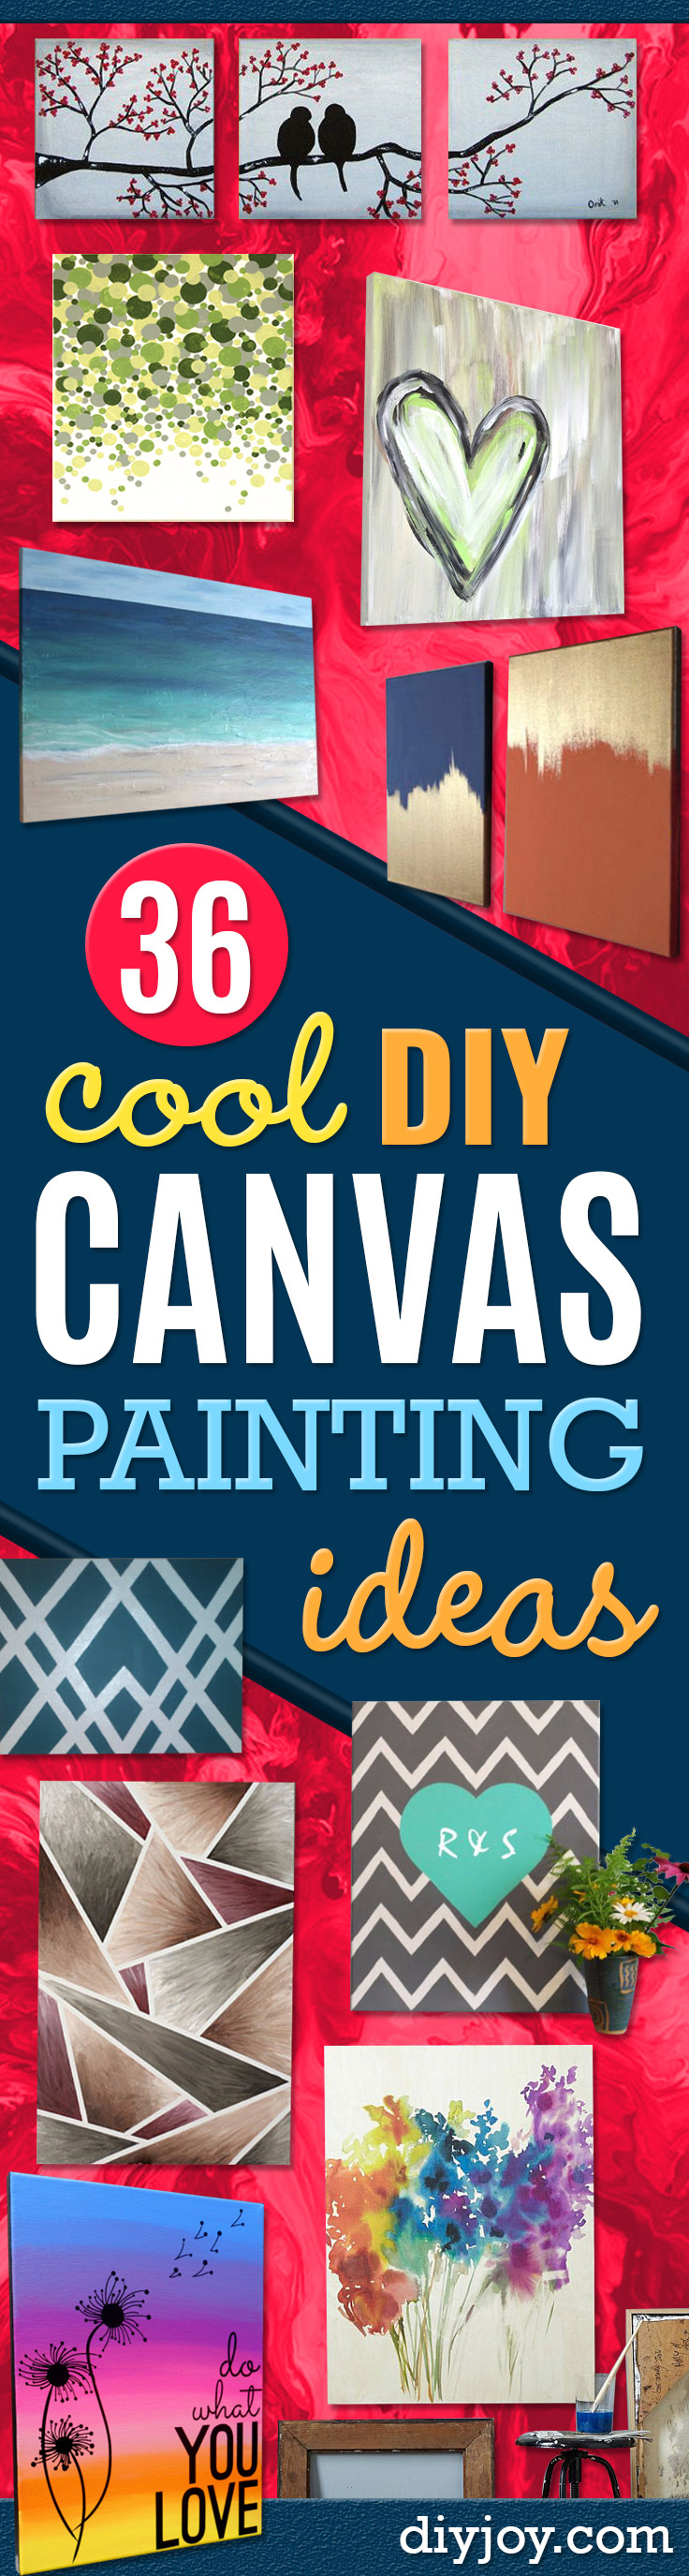 diy art ideas - DIY Canvas Painting Ideas - Cool and Easy Wall Art Ideas You Can Make On A Budget -Paint Canvas for Room Decor on a Budget - Simple Painting Tutorial for Homemade Artwork #painting #diyart #diygifts